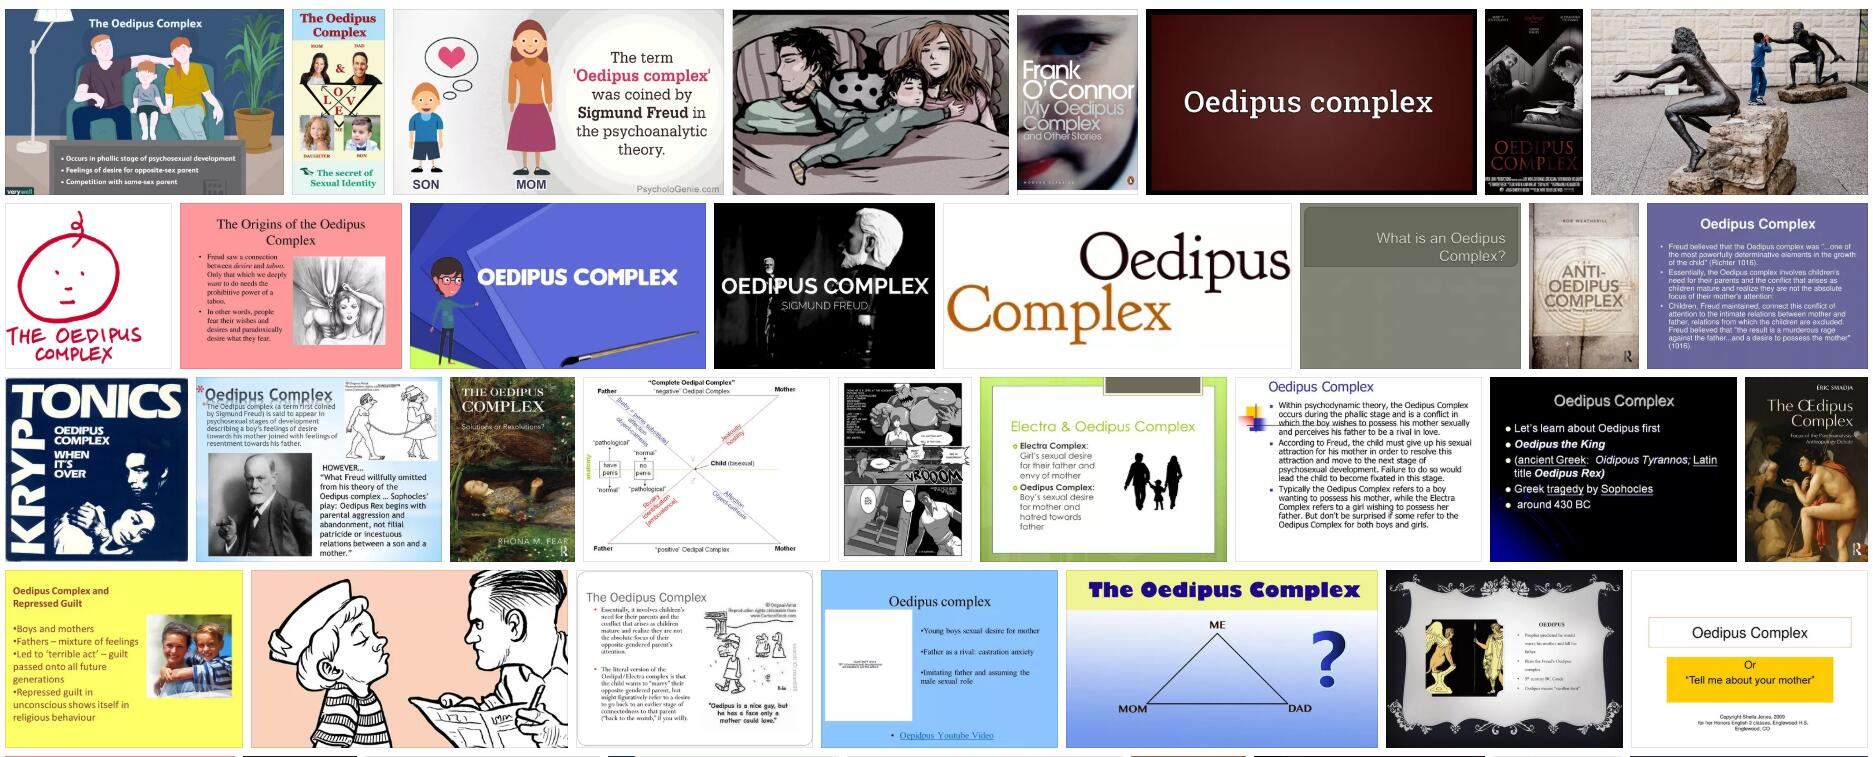 Meaning of Oedipus Complex in English